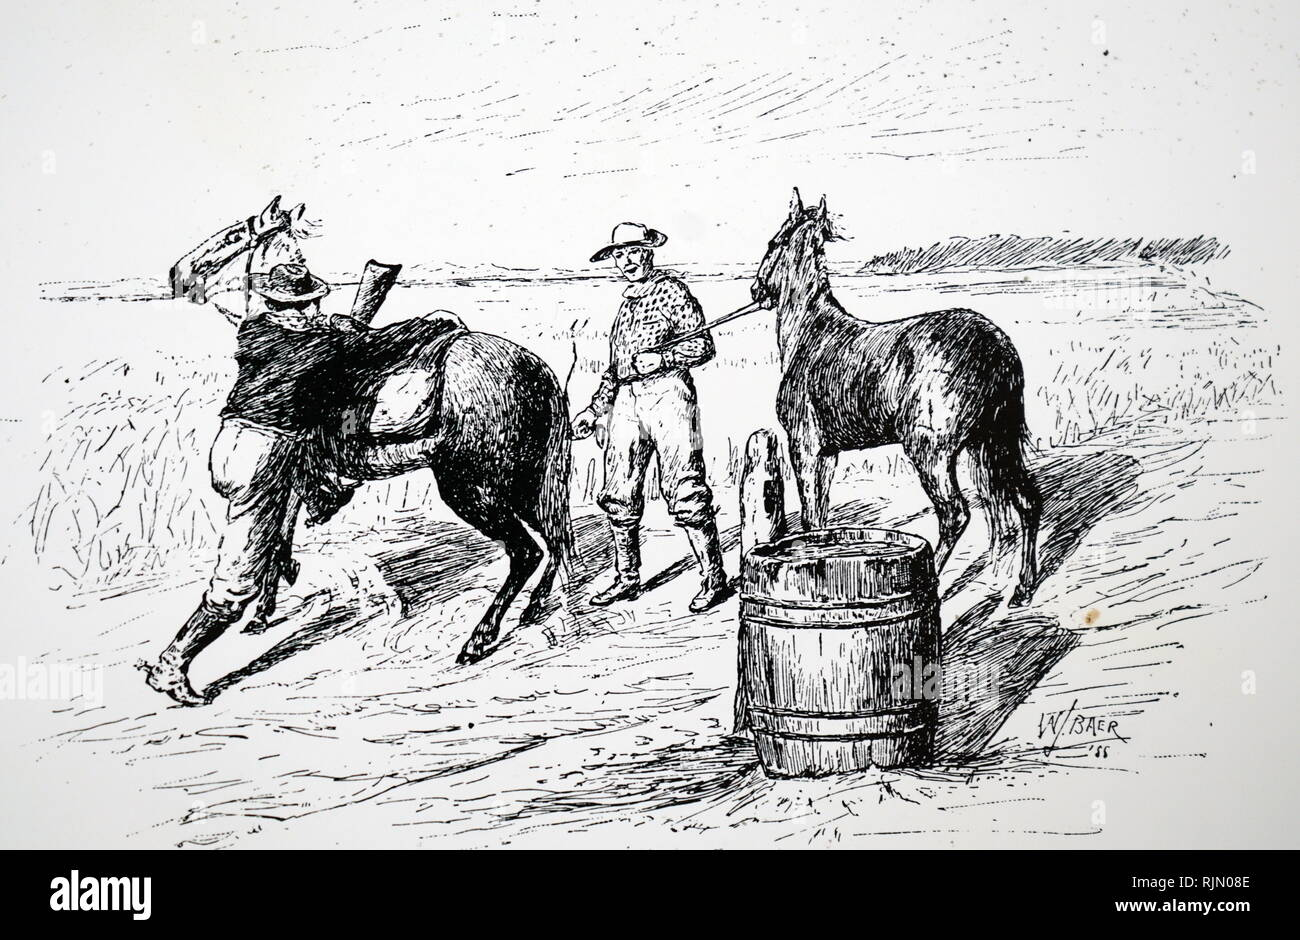 Illustration showing the Pony Express, postal relay. American 1890. - Stock Image